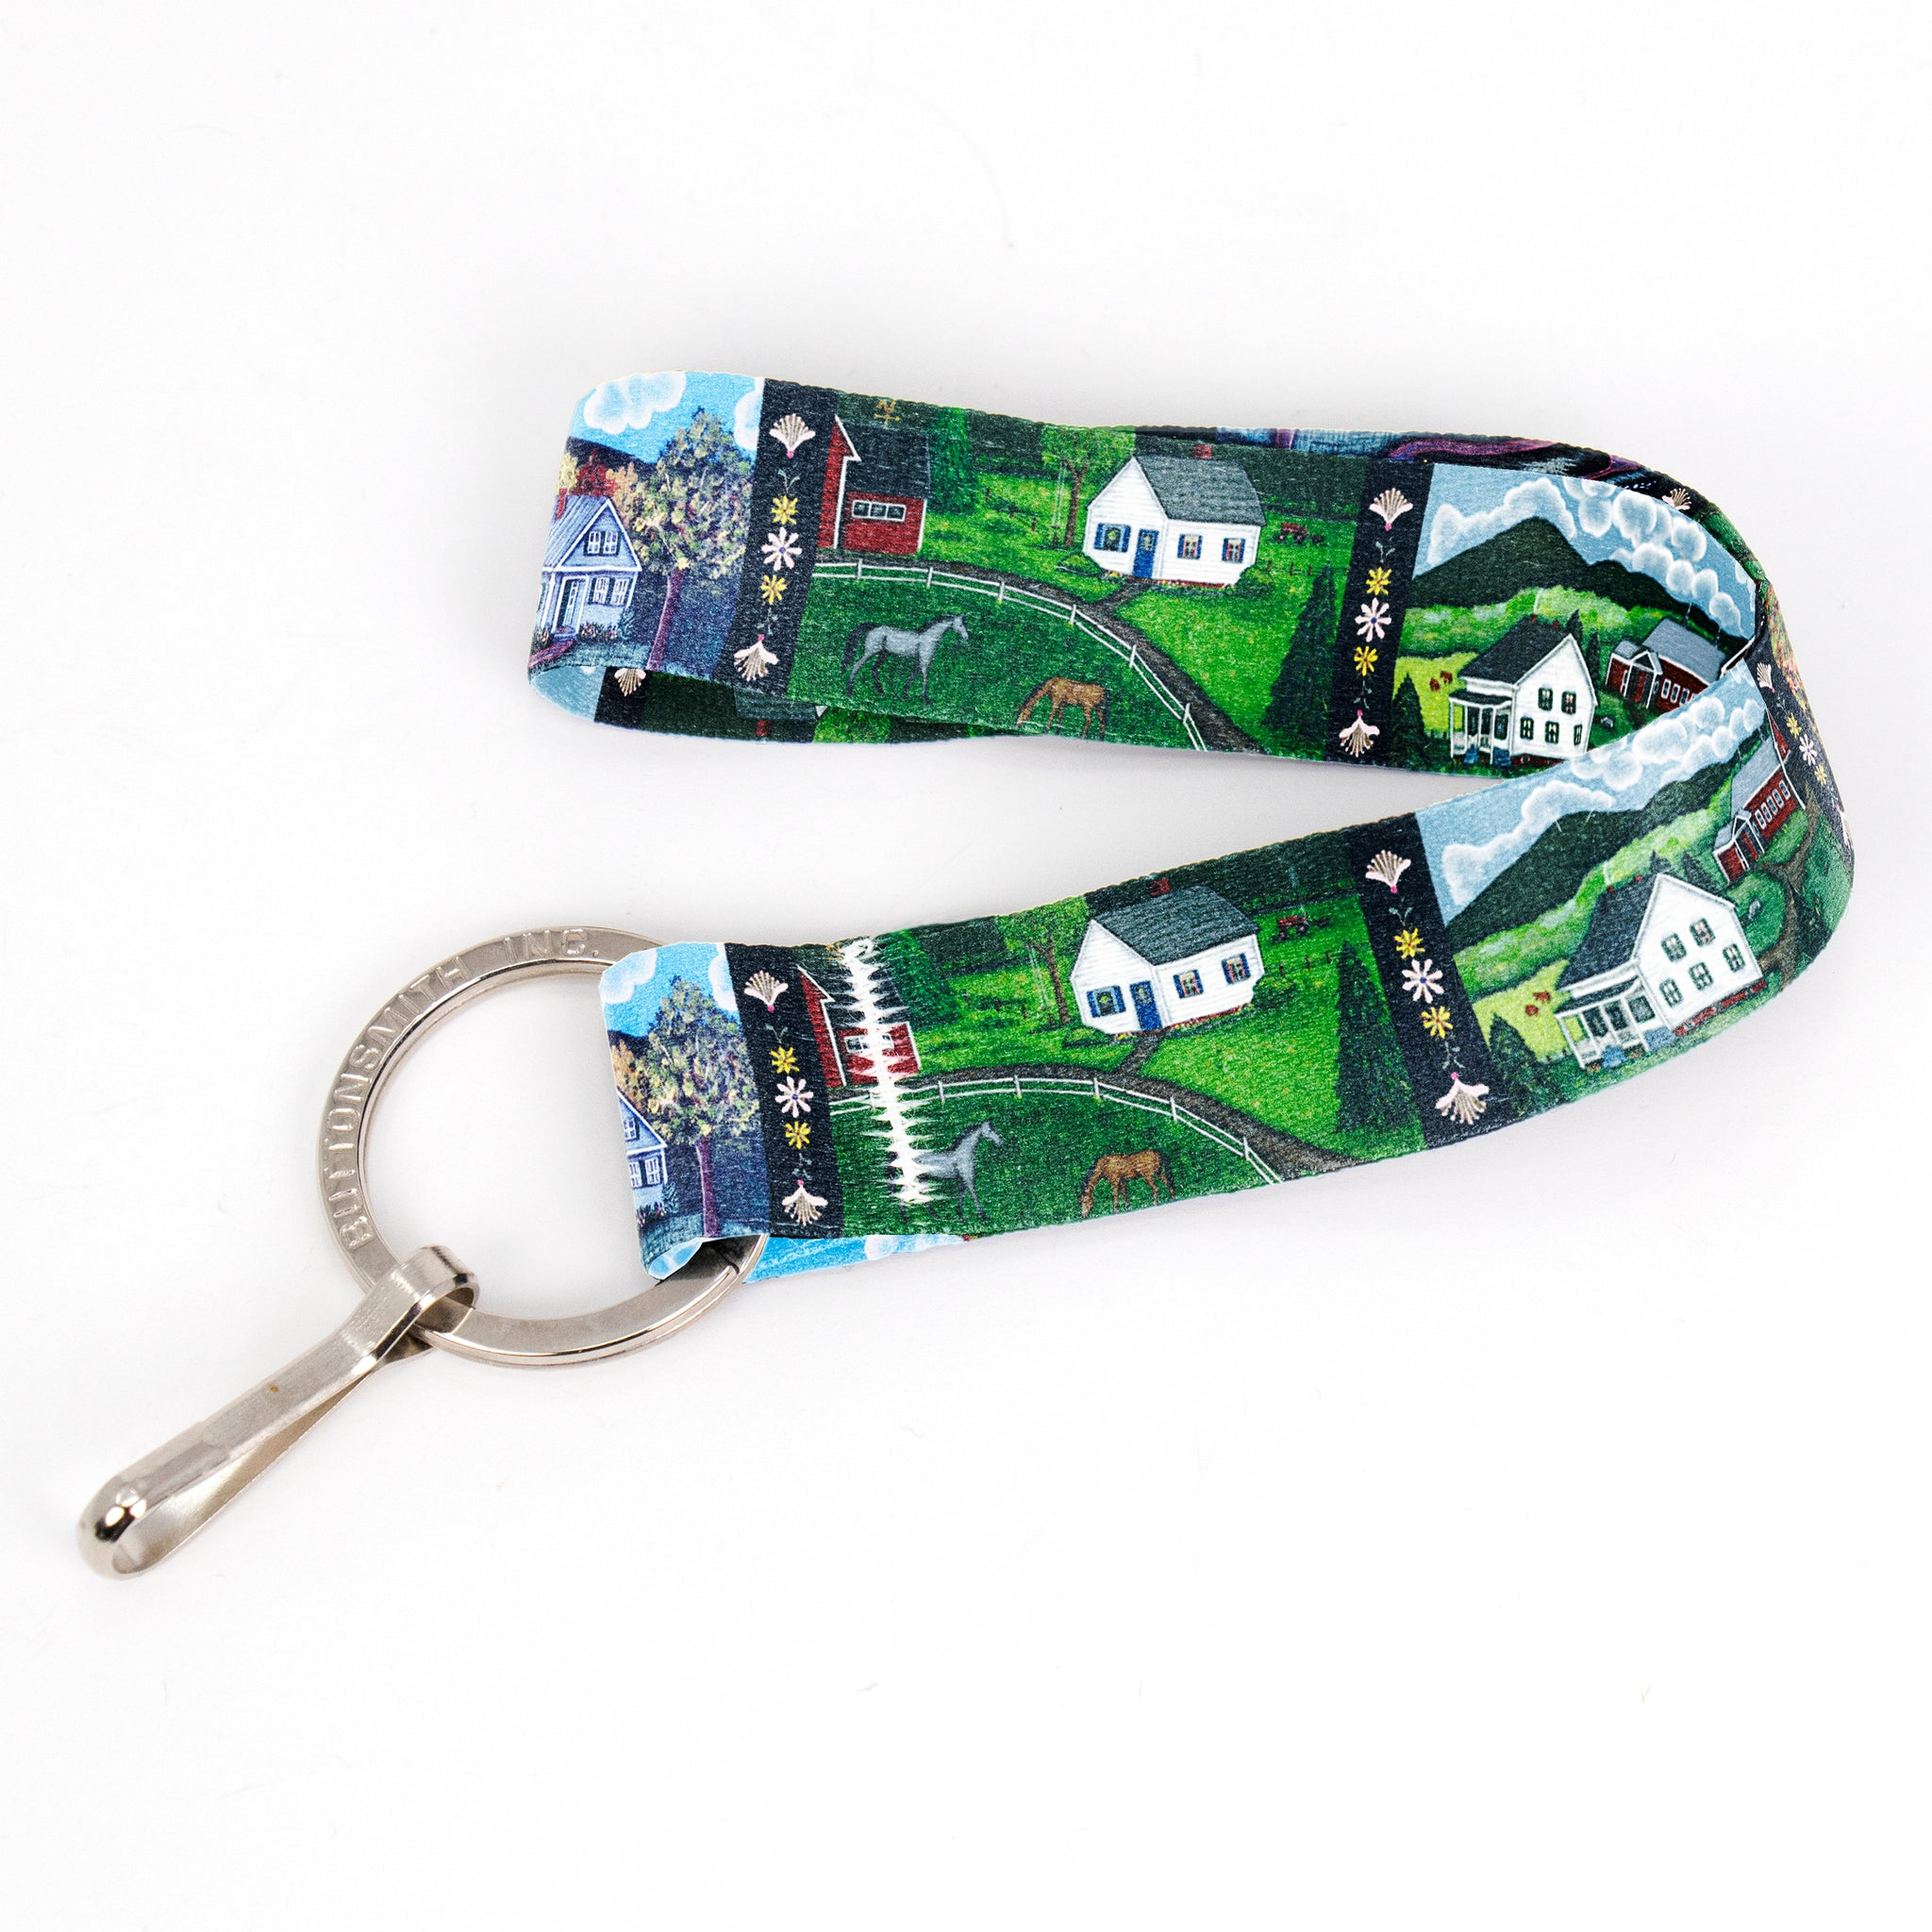 Buttonsmith Farm Houses Wristlet Key Chain Lanyard - Short Length with Flat Key Ring and Clip - Based on Rebecca McGovern Art - Officially Licensed - Made in the USA